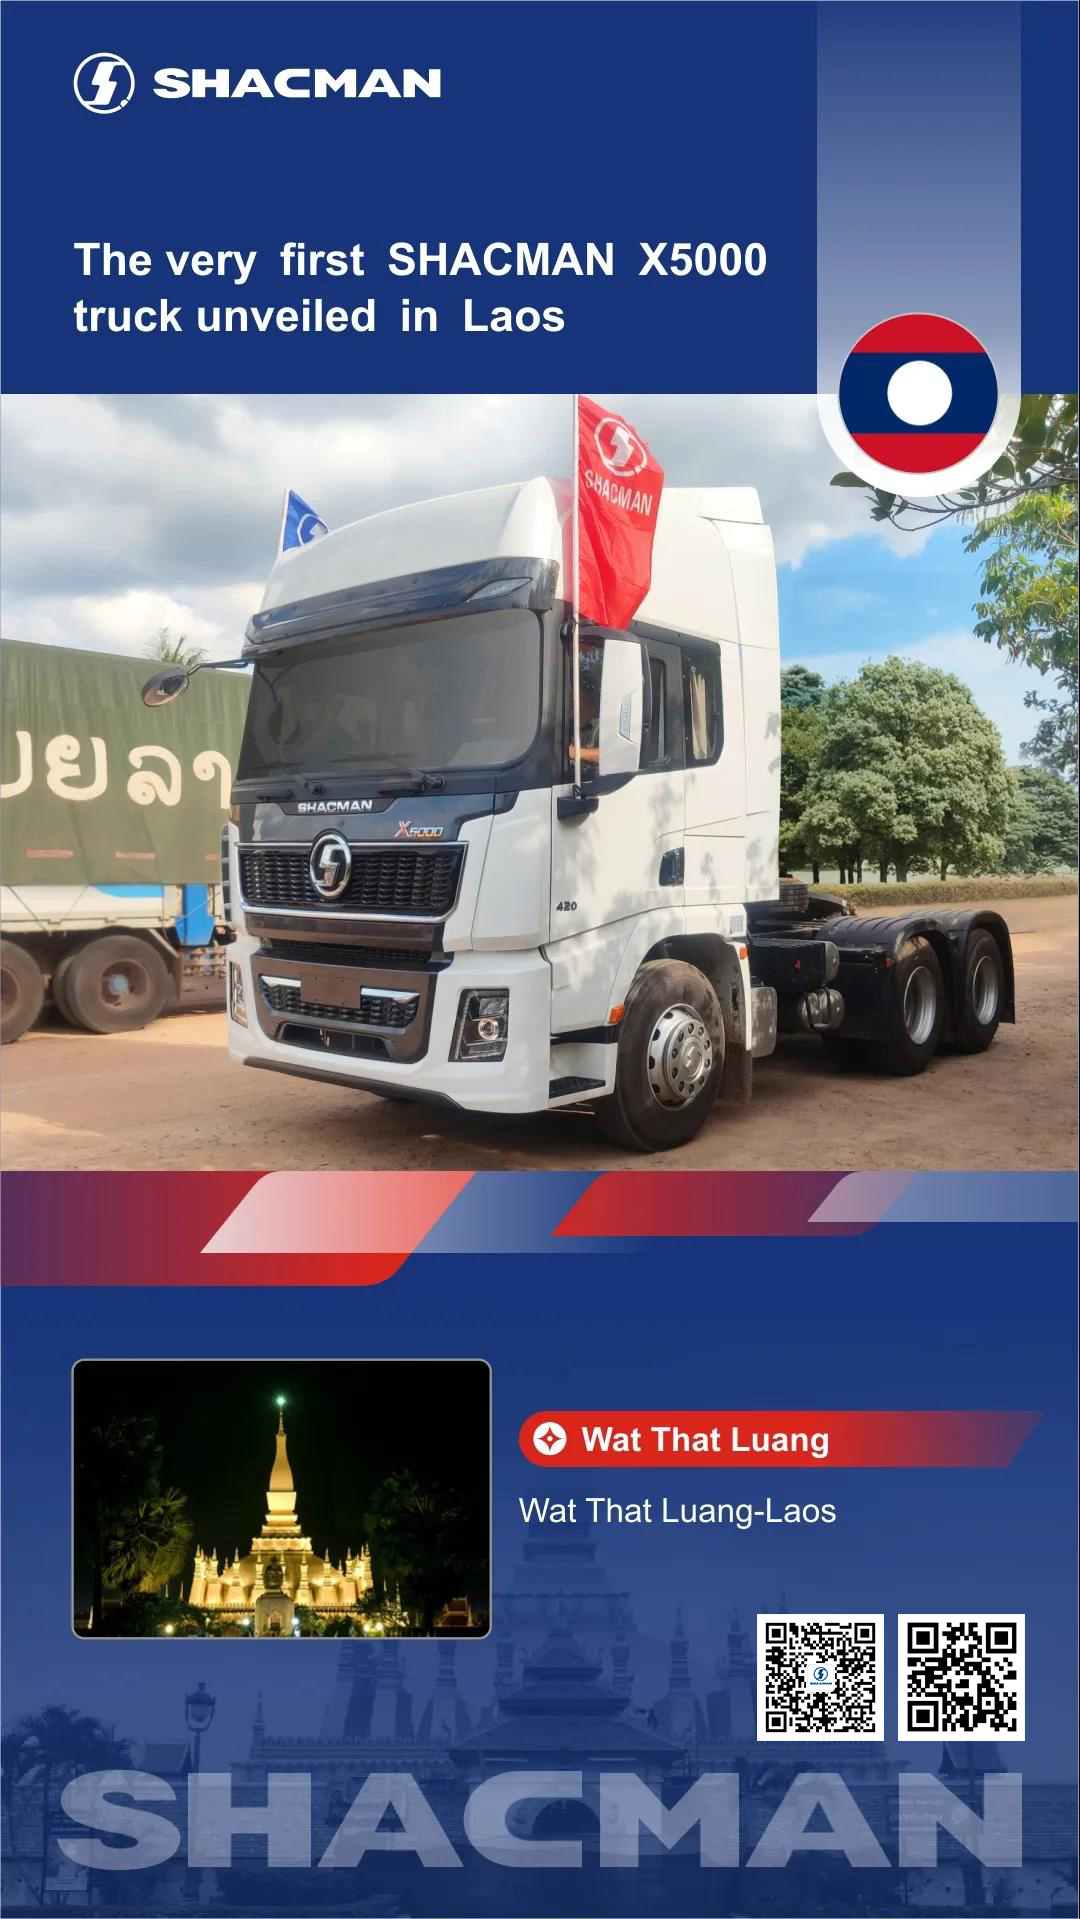 SHACMAN X5000 Unveiled in Laos